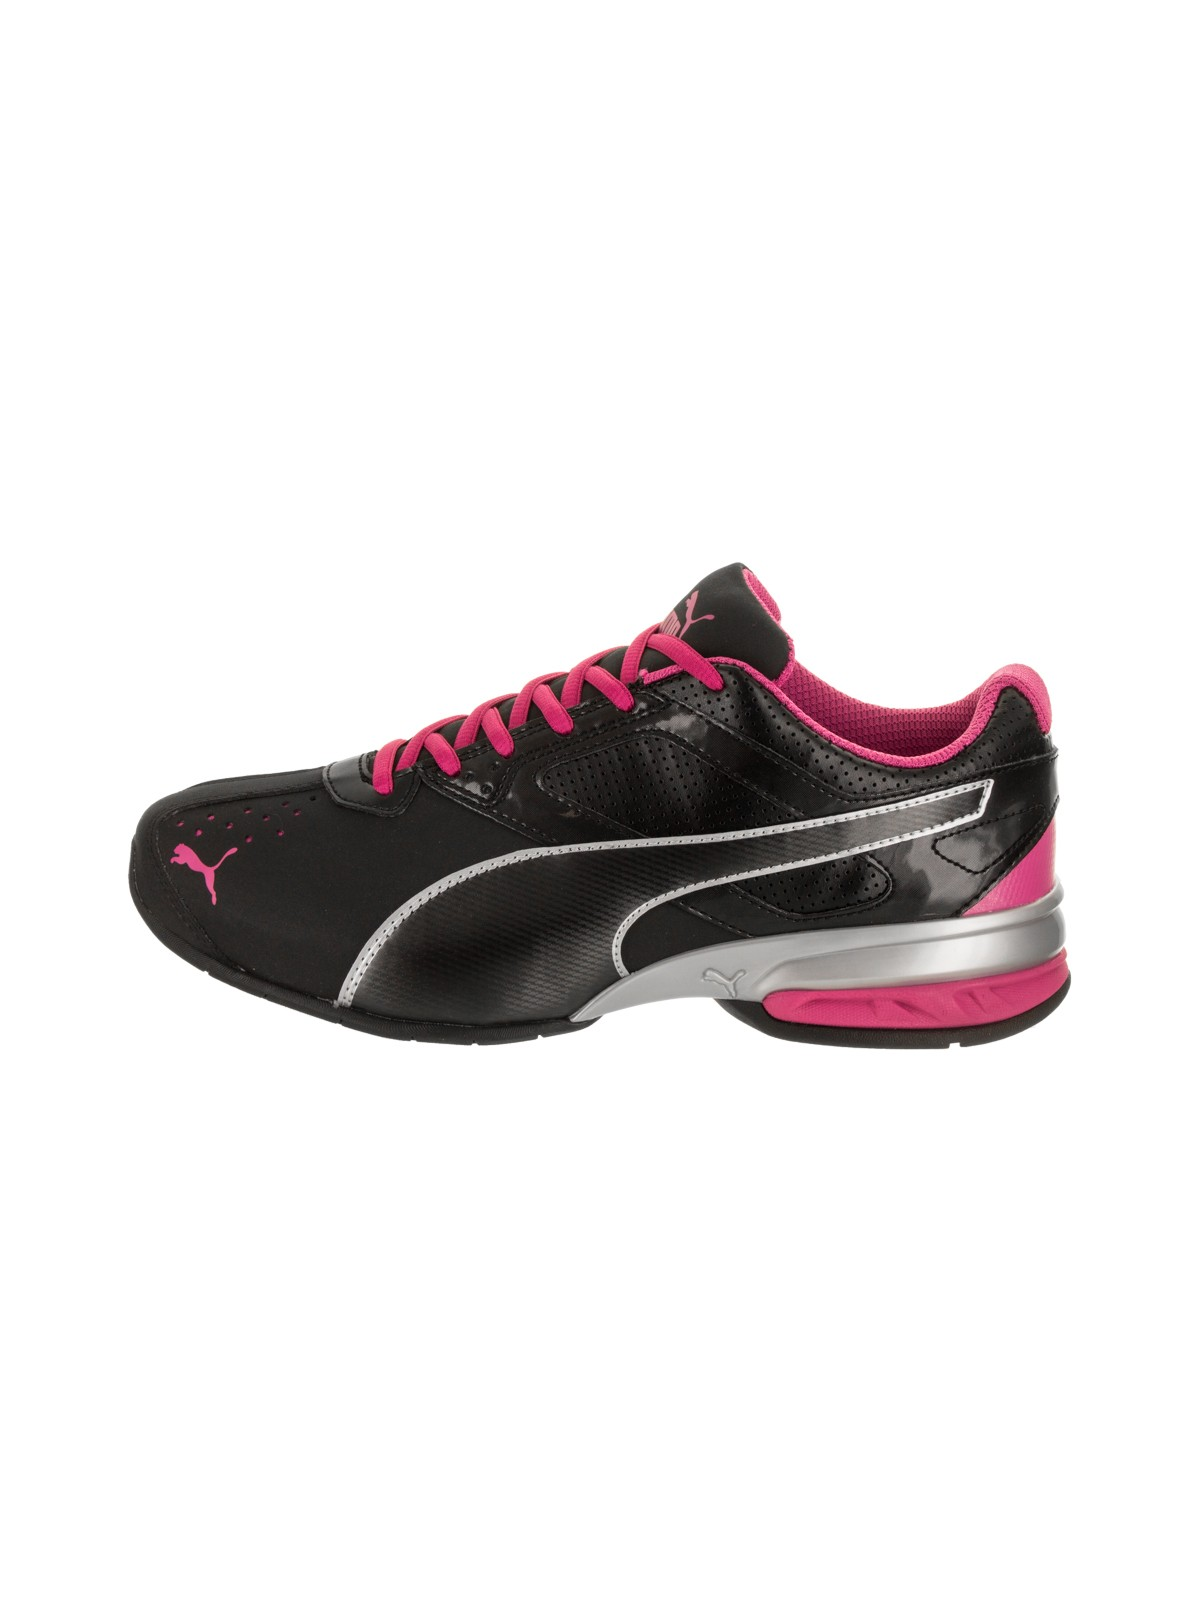 0a0c7694bce Skechers - PUMA Women s Tazon 6 Wn s Fm Cross-Trainer Shoe